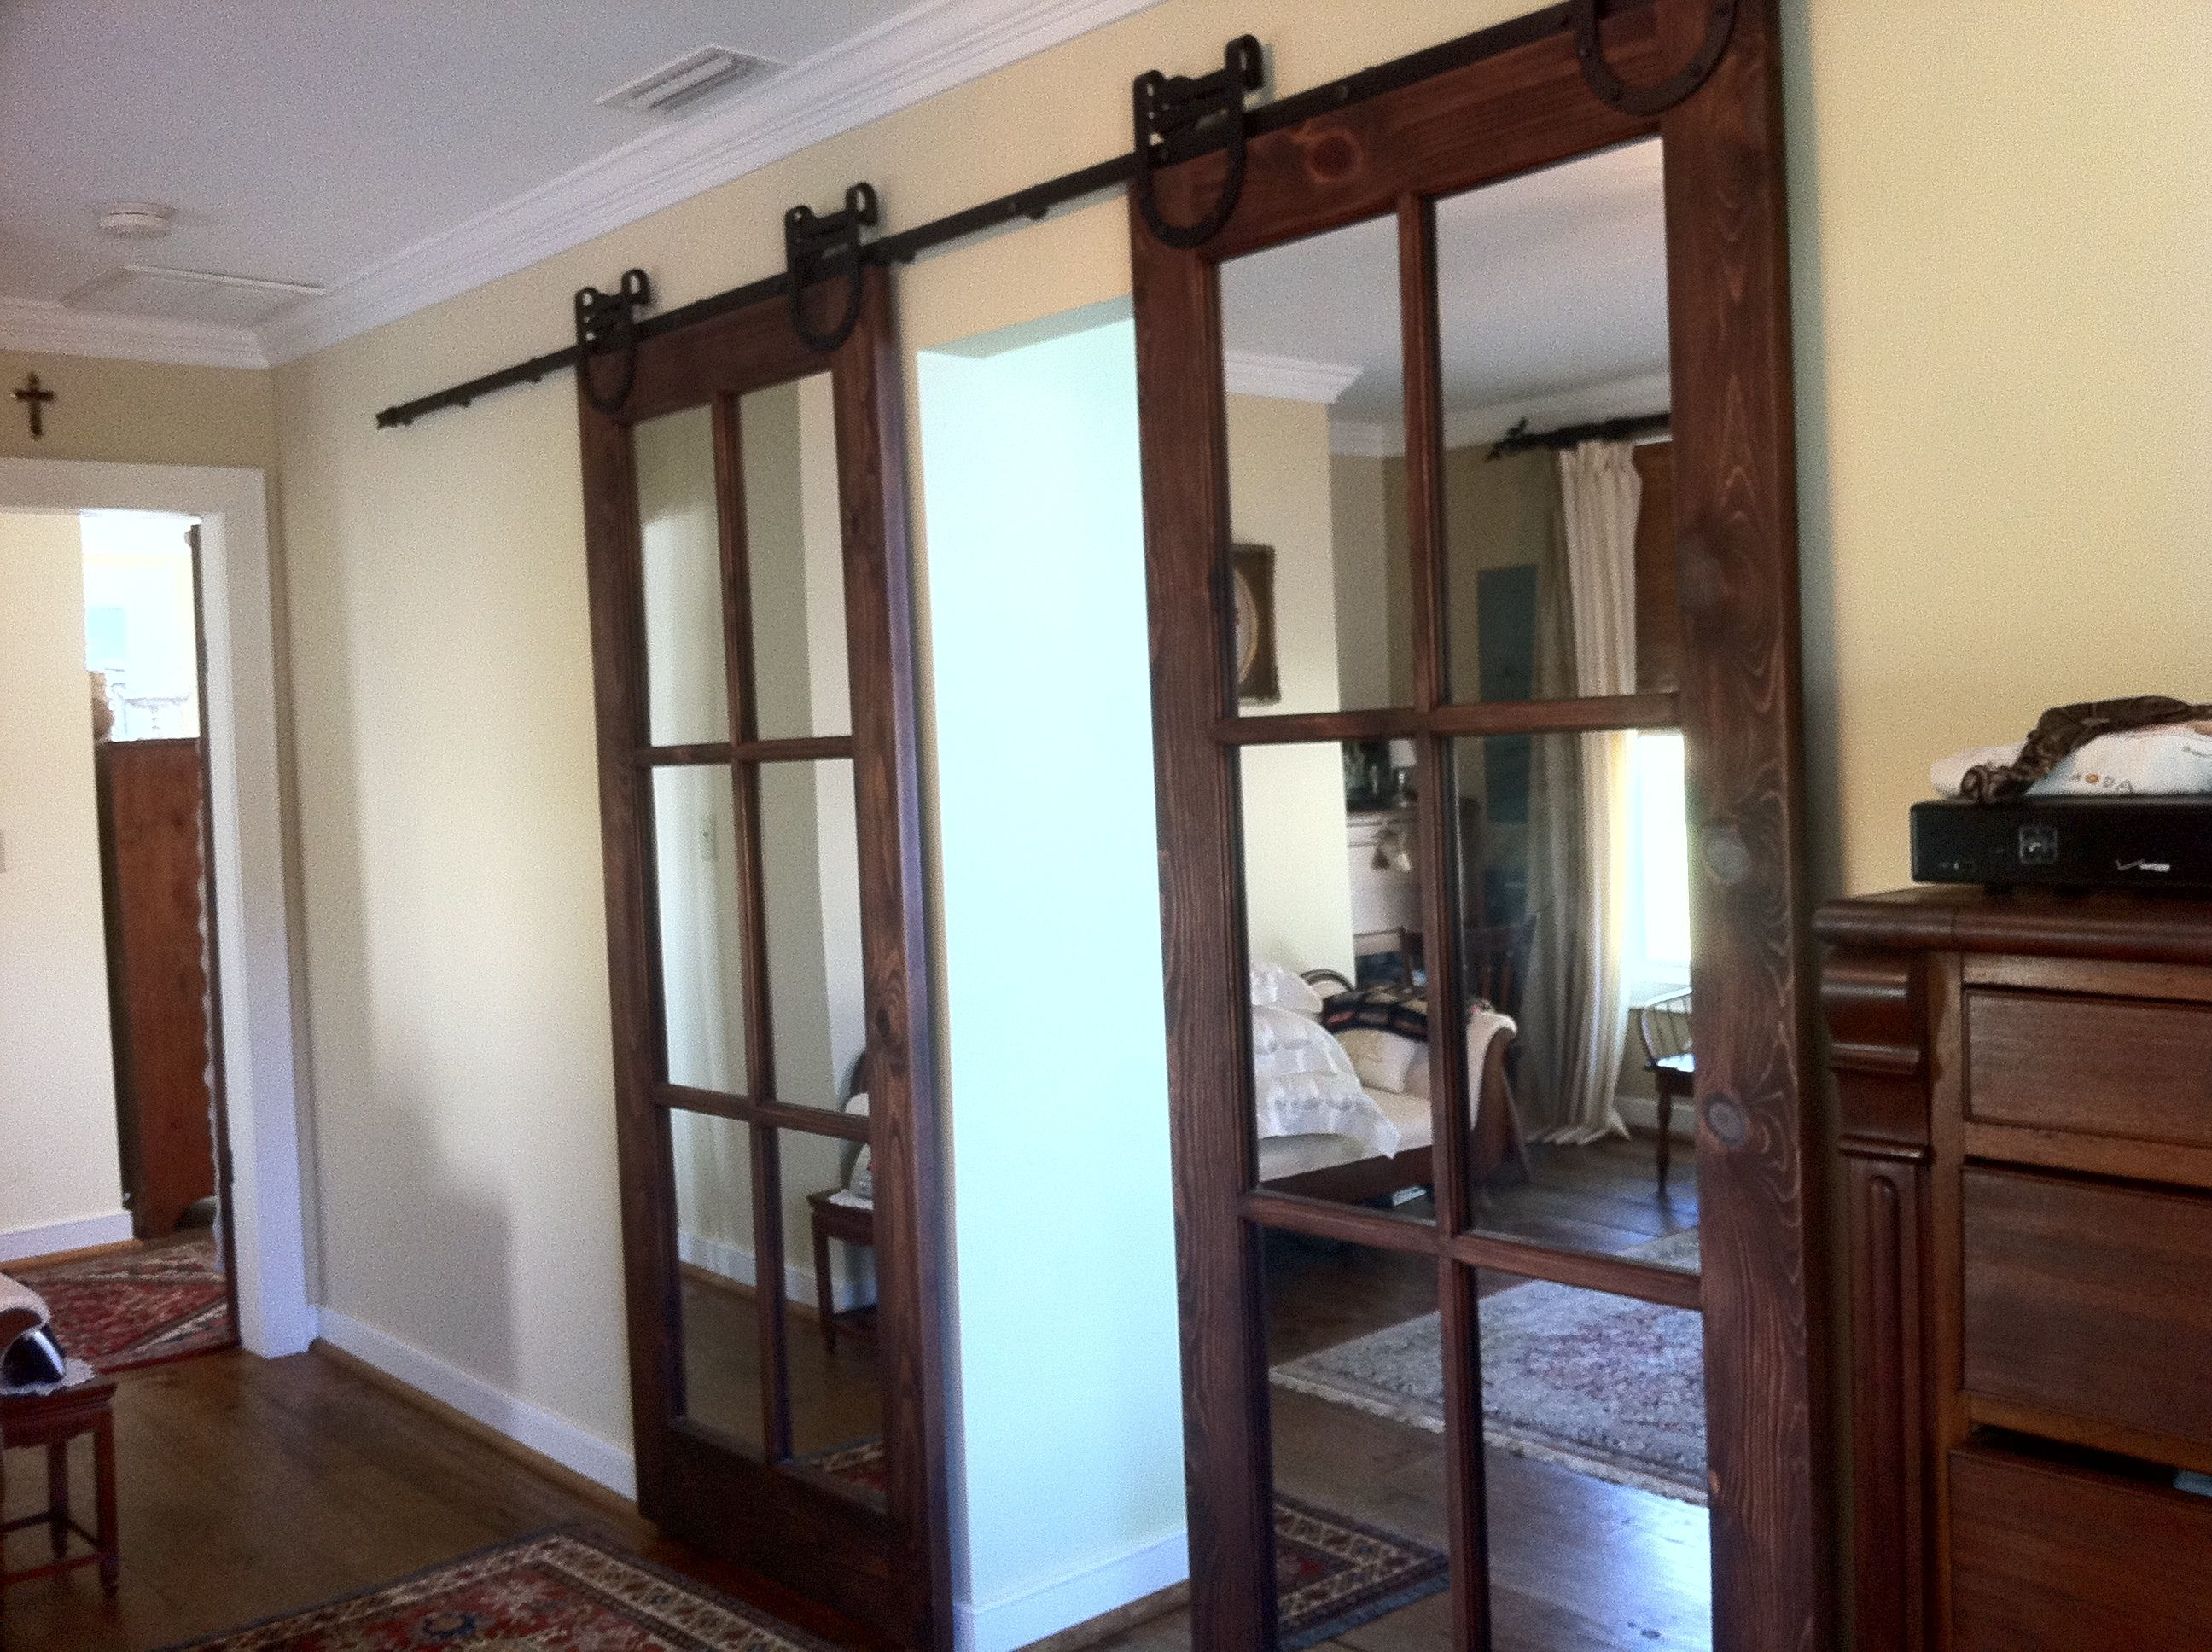 Barn Door For Kitchen We Currently Have A Standard French Door Between The Kitchen And